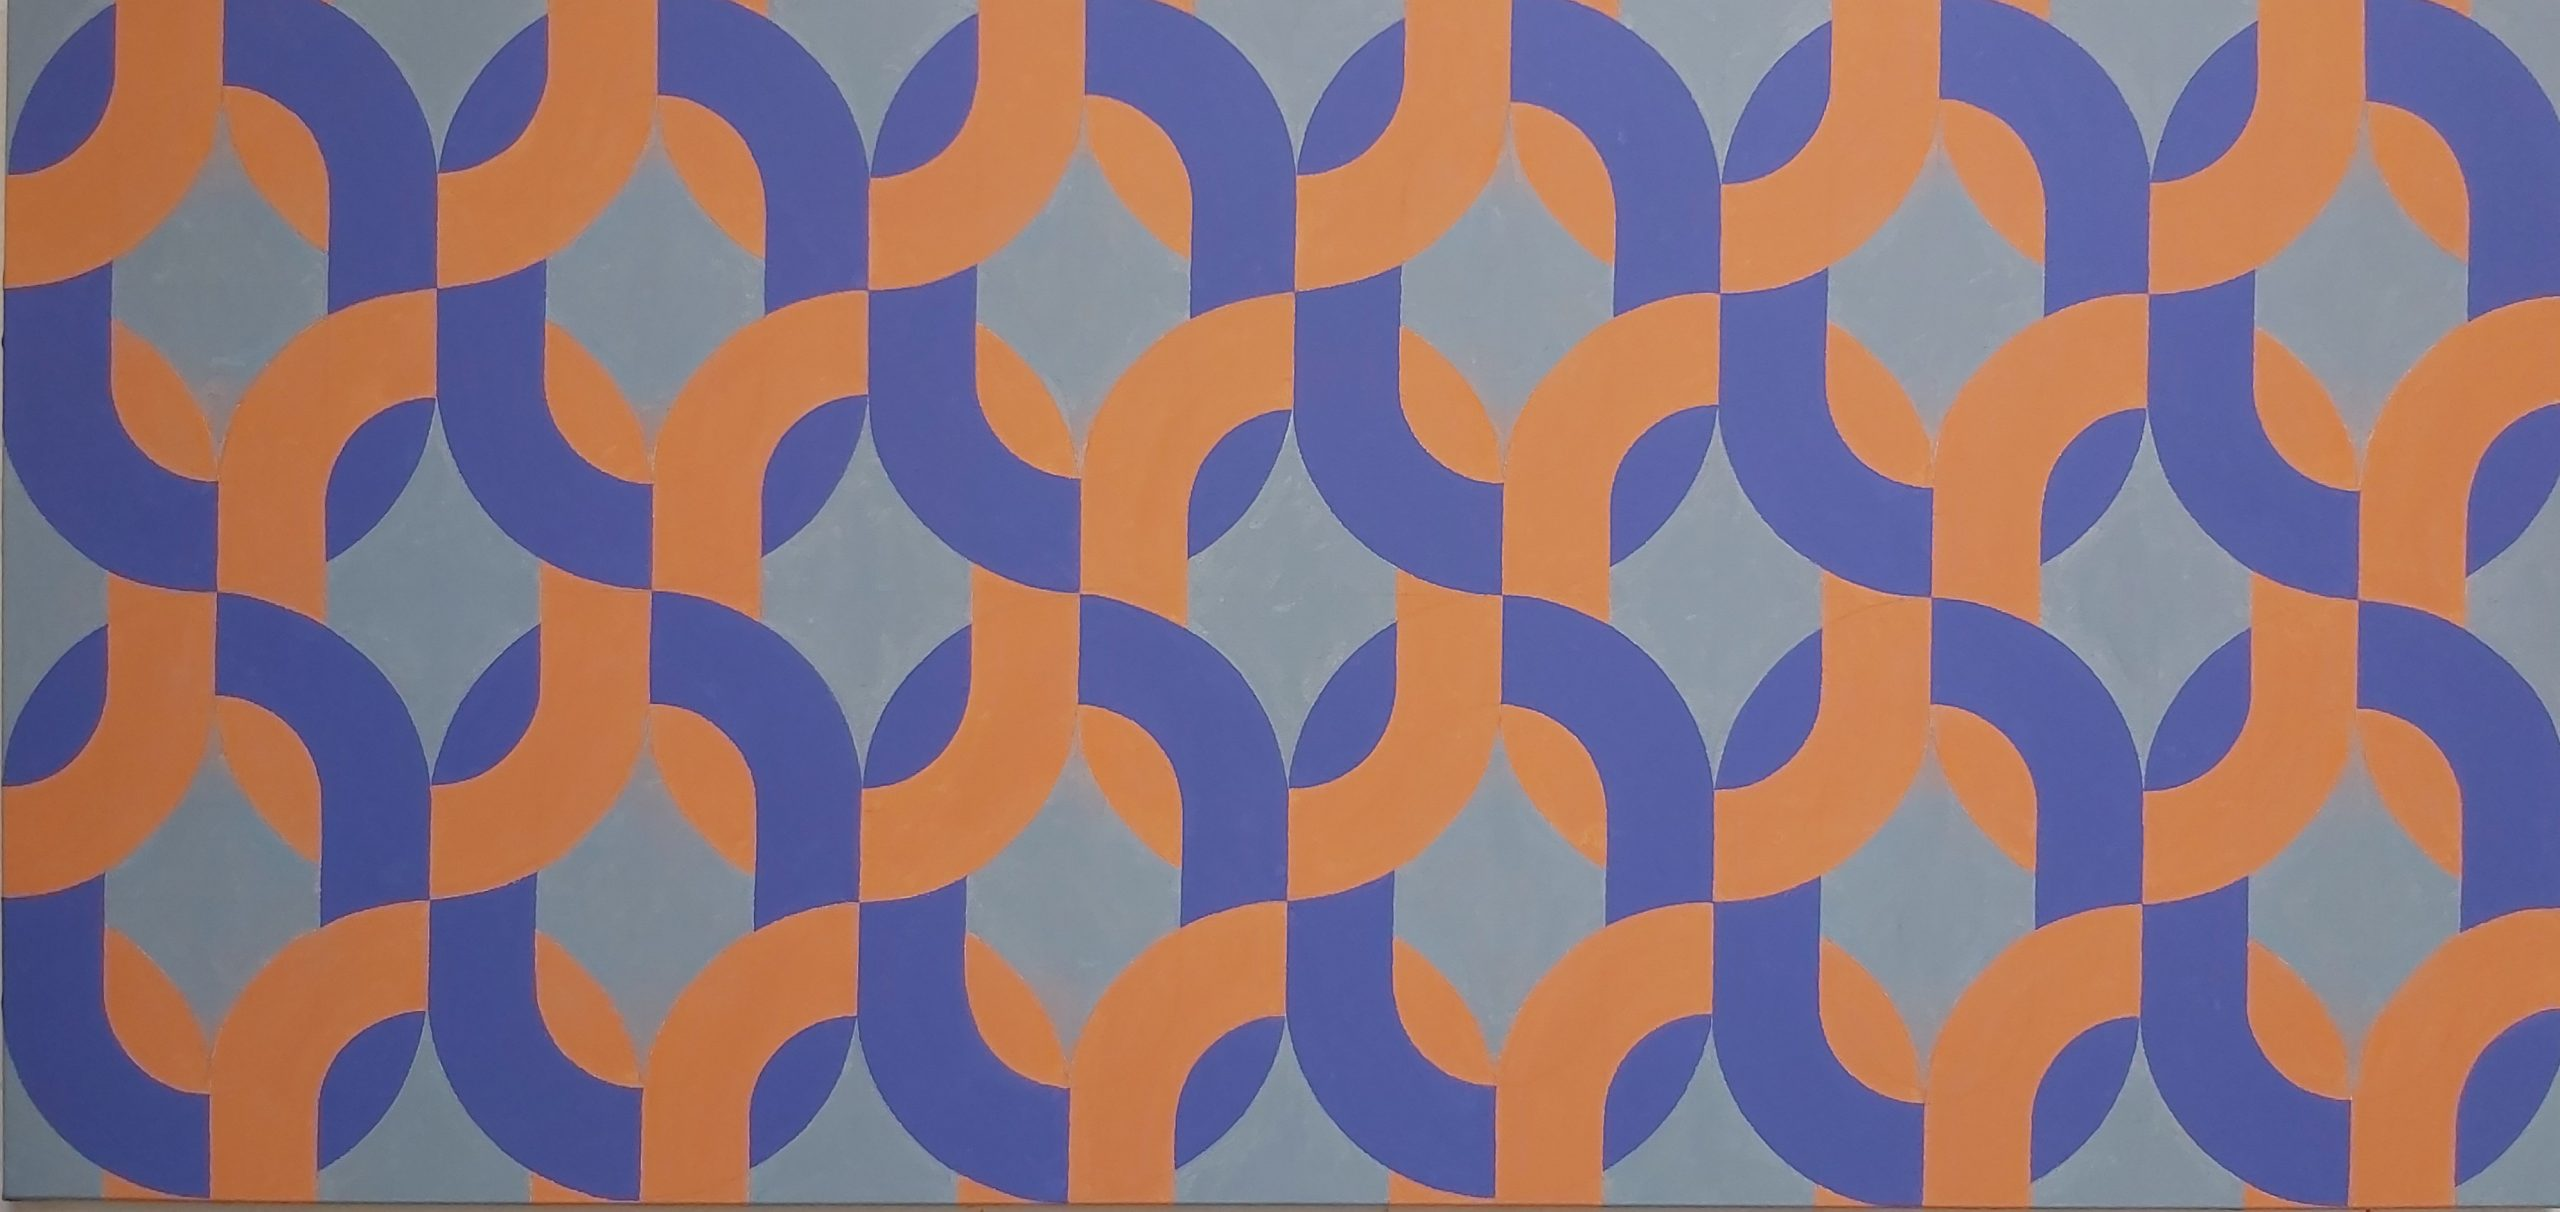 Silsila (Orange Purple) 2020 Acrylic on Canvas 86 x 181 cm